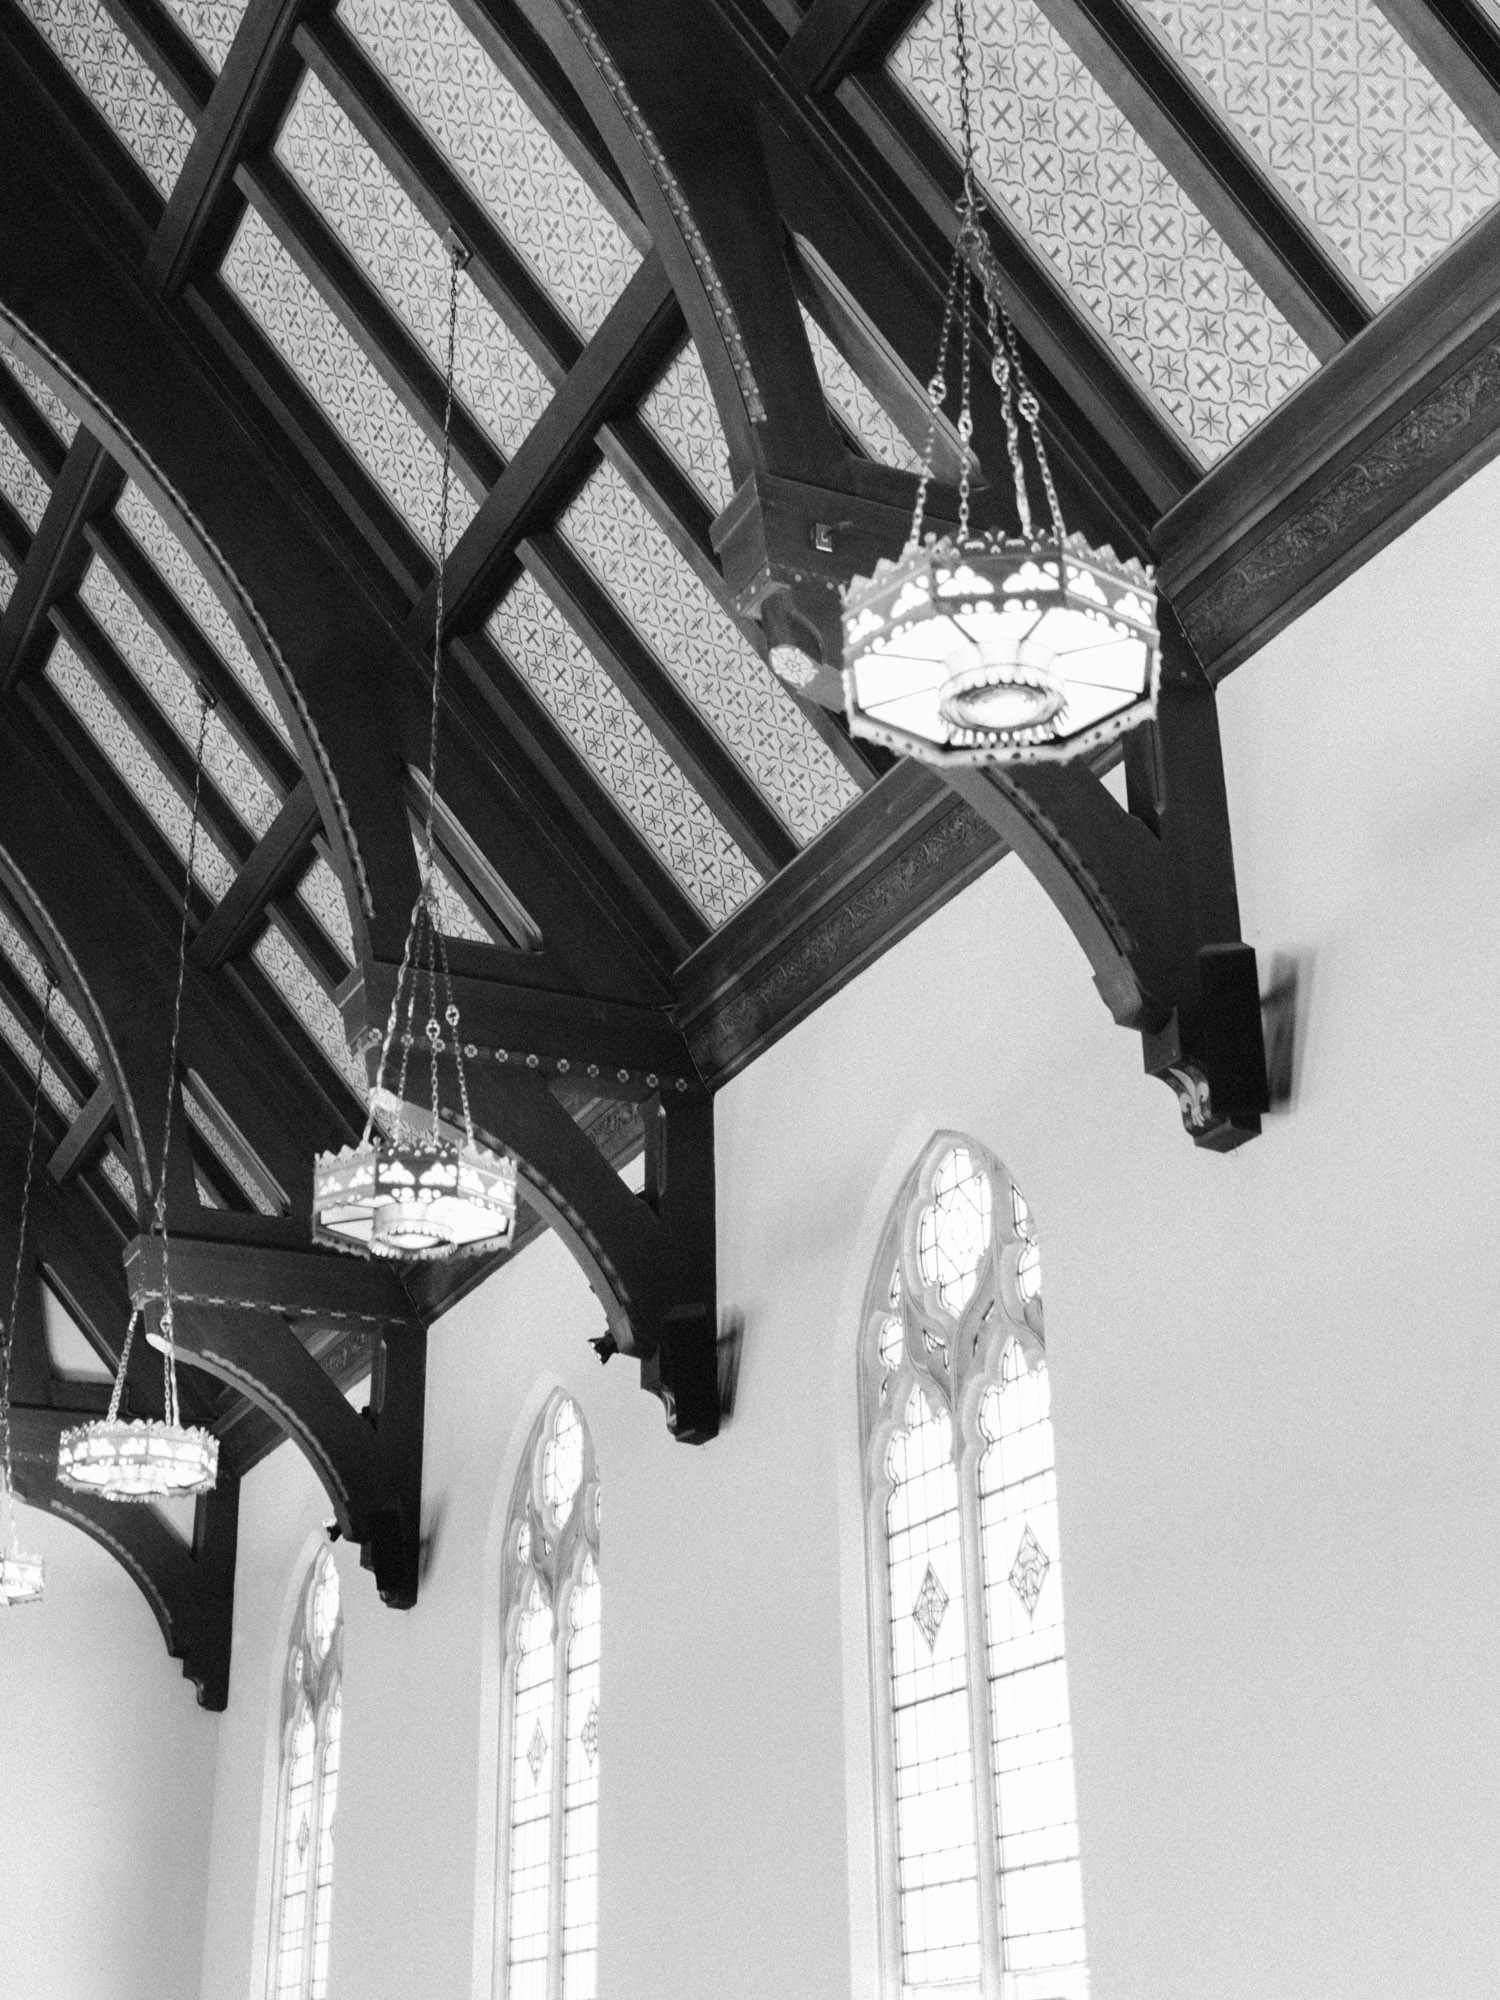 The ornate interior and ceiling of an Ann Arbor, Michigan church